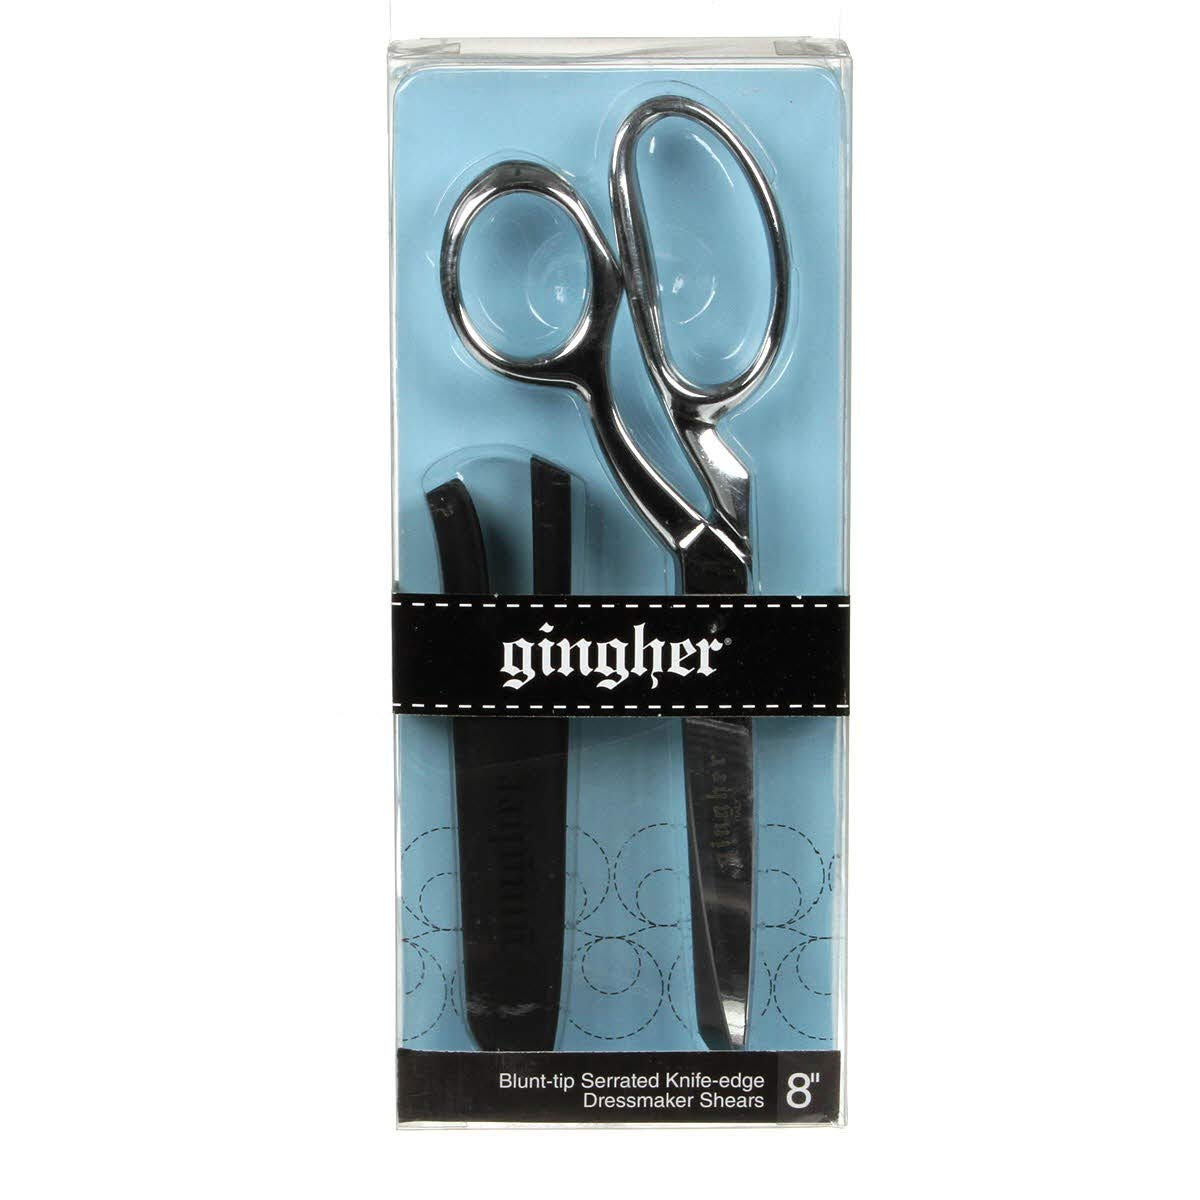 Gingher 8in Serrated/Knife Edge Dressmakers Shears Blunt Tip by Gingher Inc